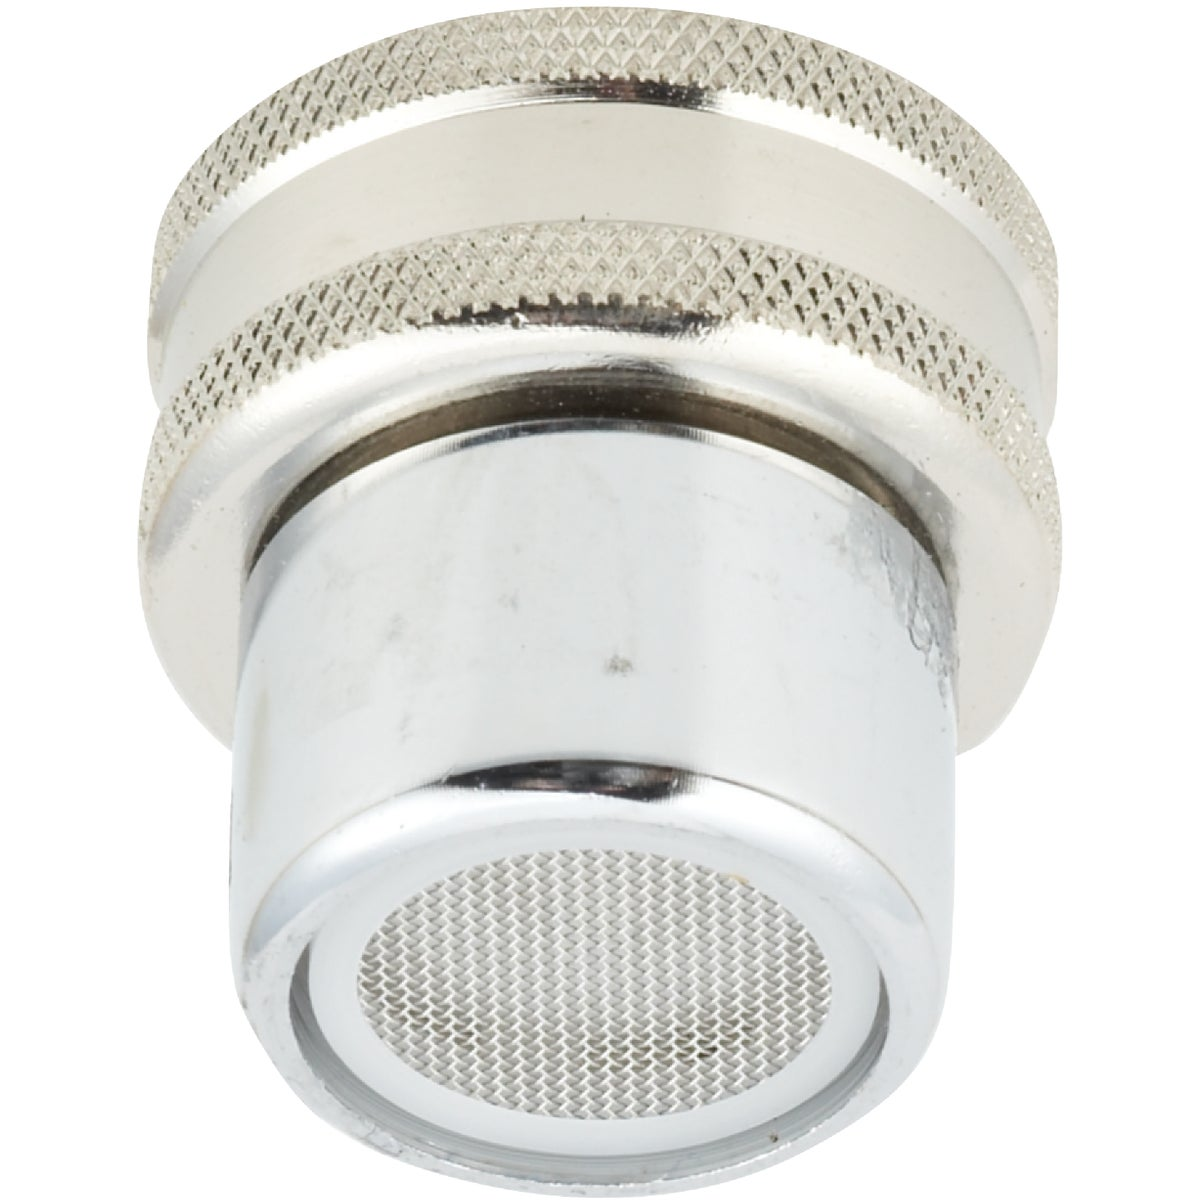 "3/4"" HT FAUCET AERATOR - W-1136LF by Do it Best"